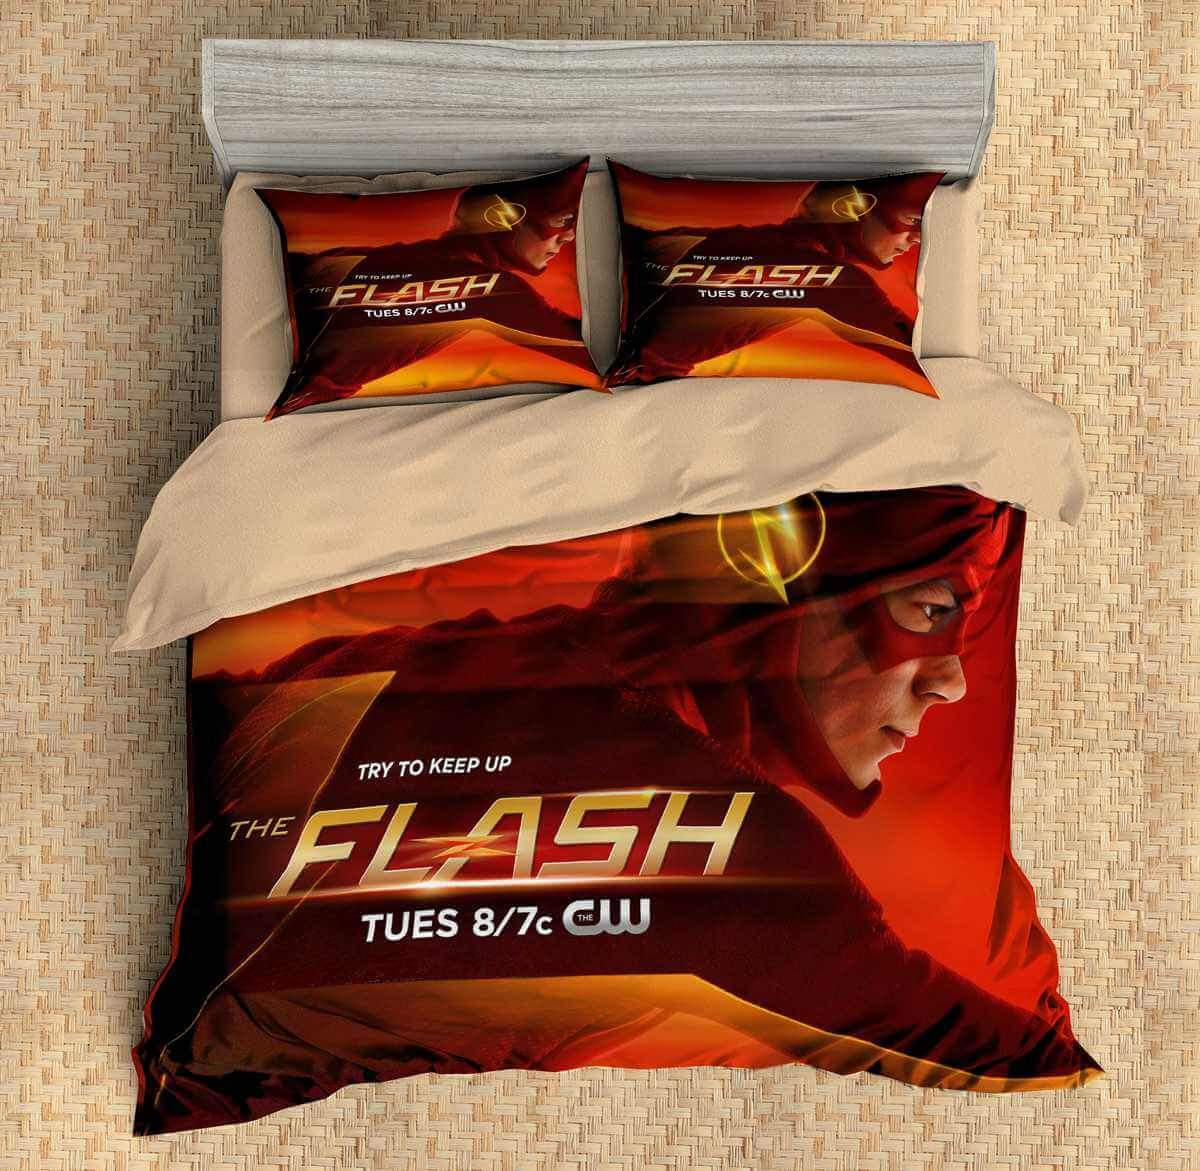 Image of: The Flash Bed Set Custom